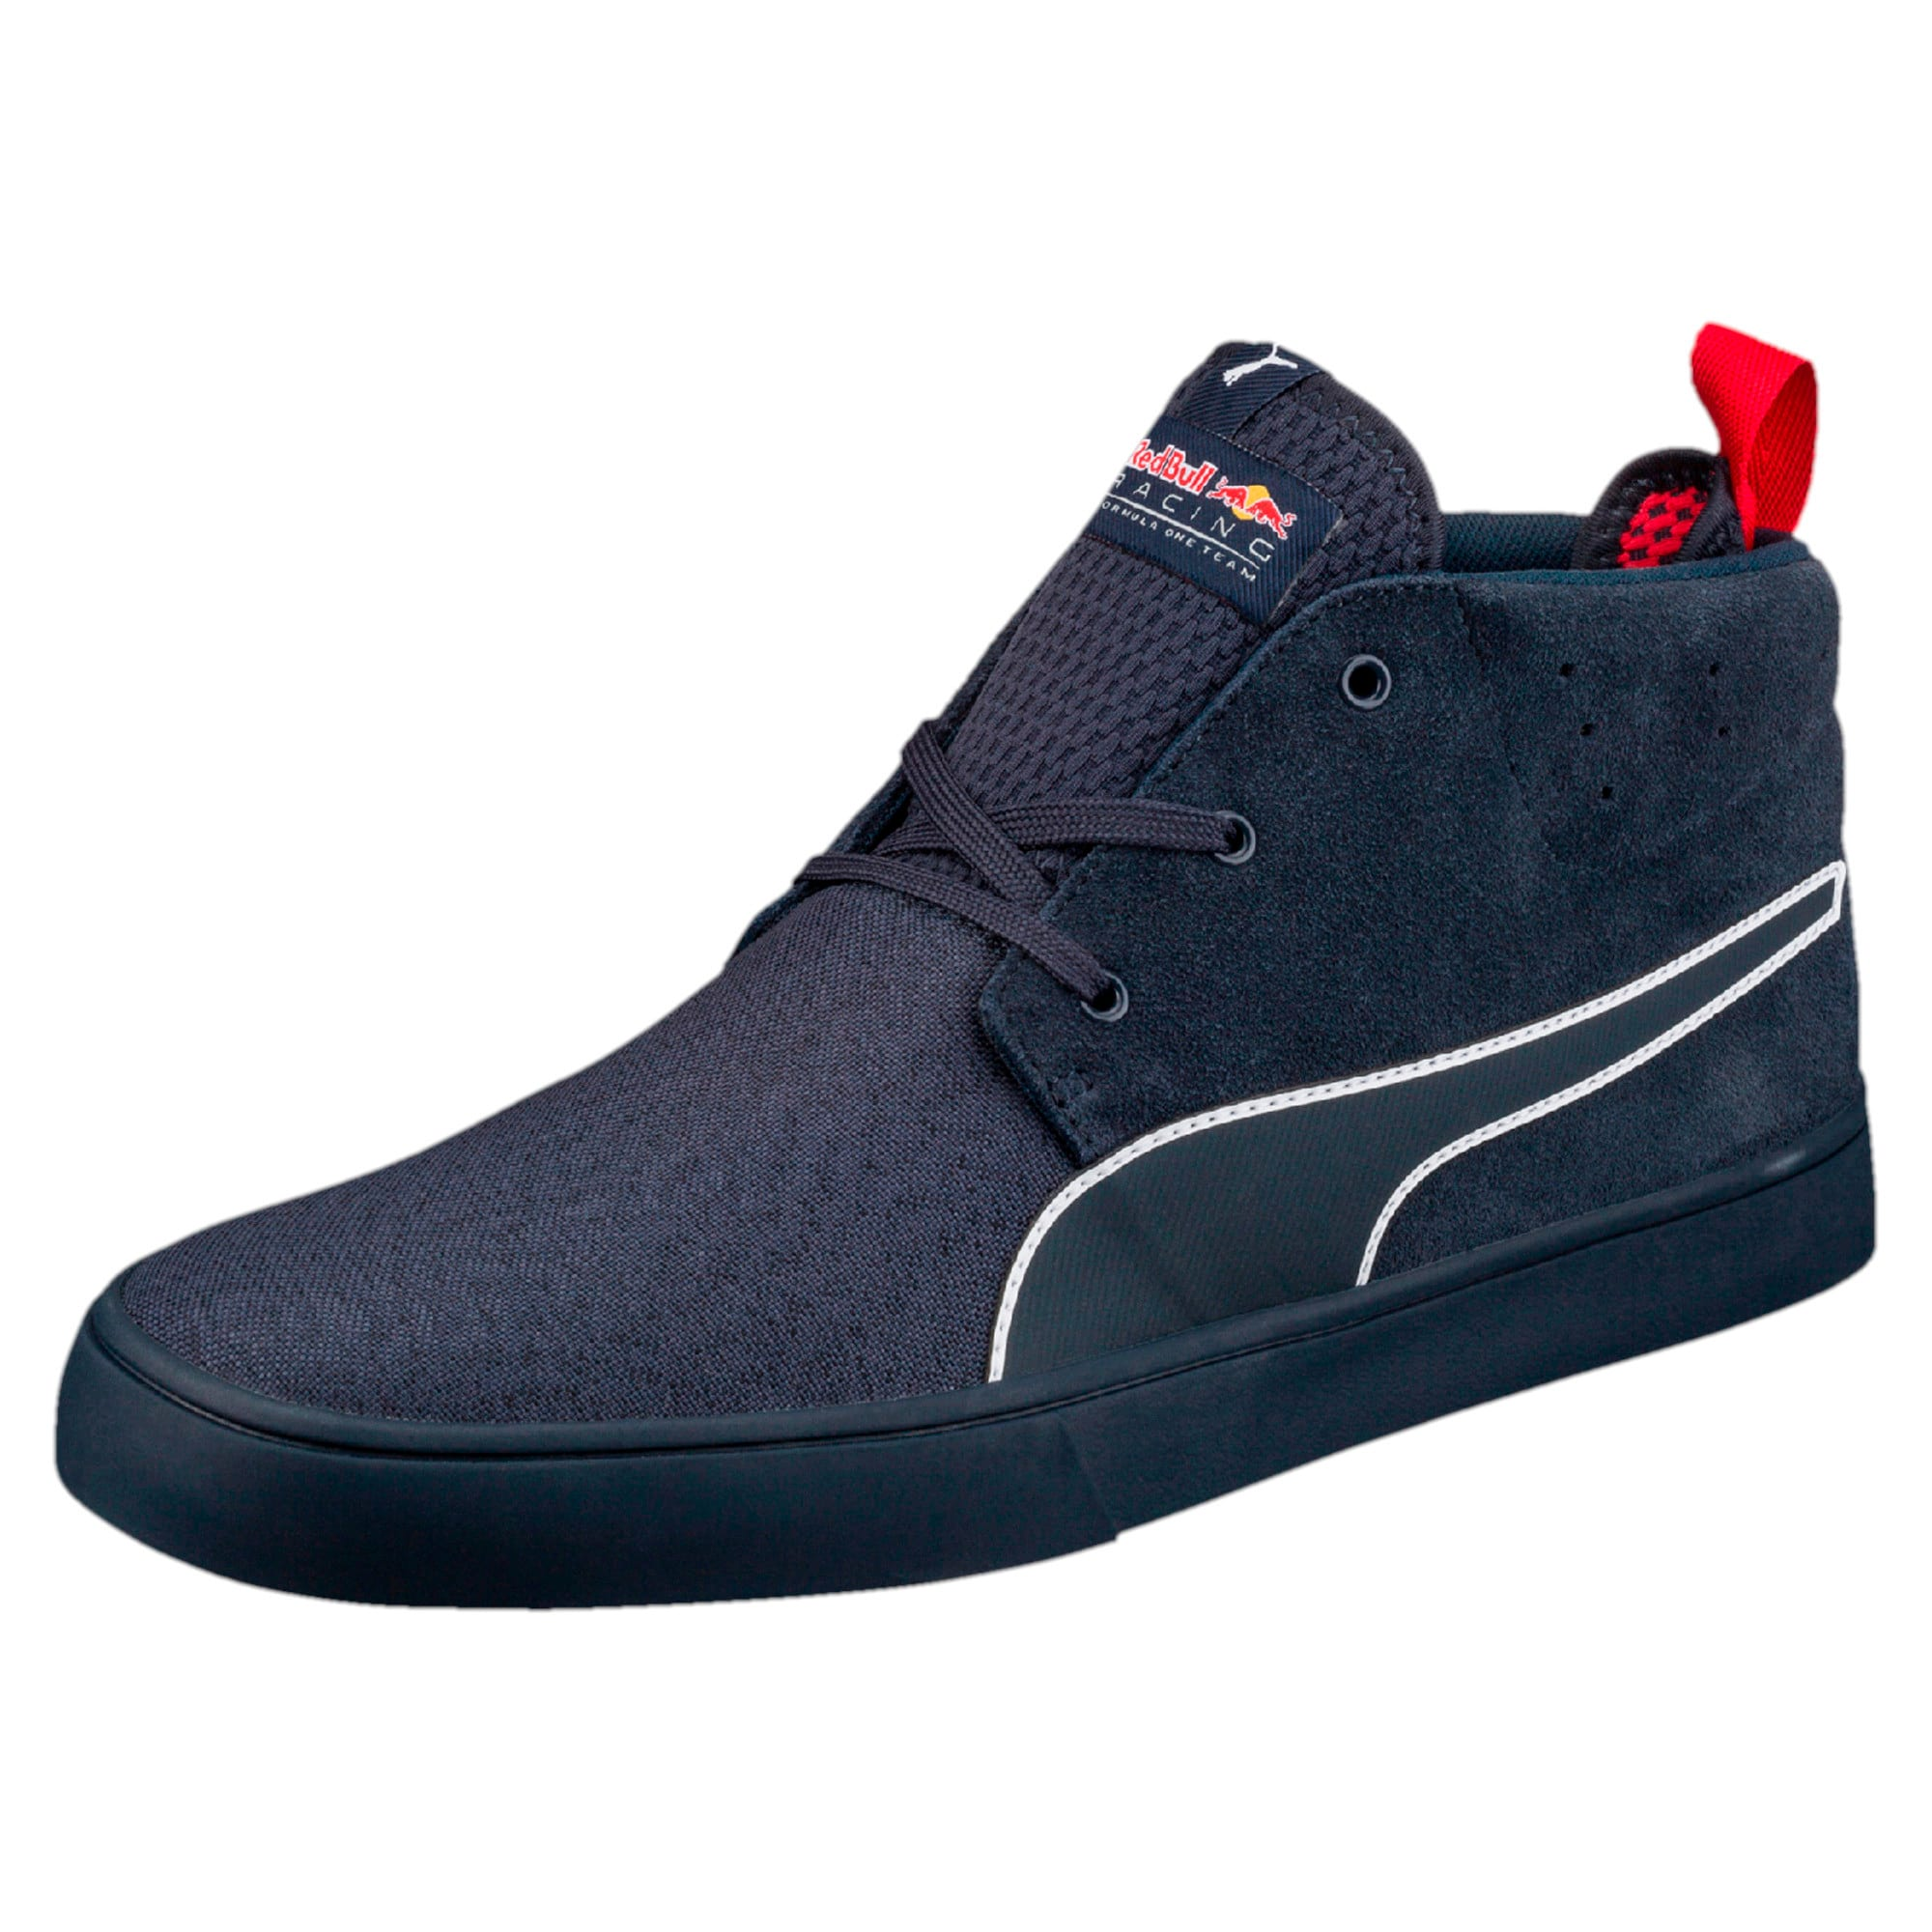 Thumbnail 1 of Red Bull Racing Vulc Desert Boots, Total Eclipse-Chinese Red, medium-IND